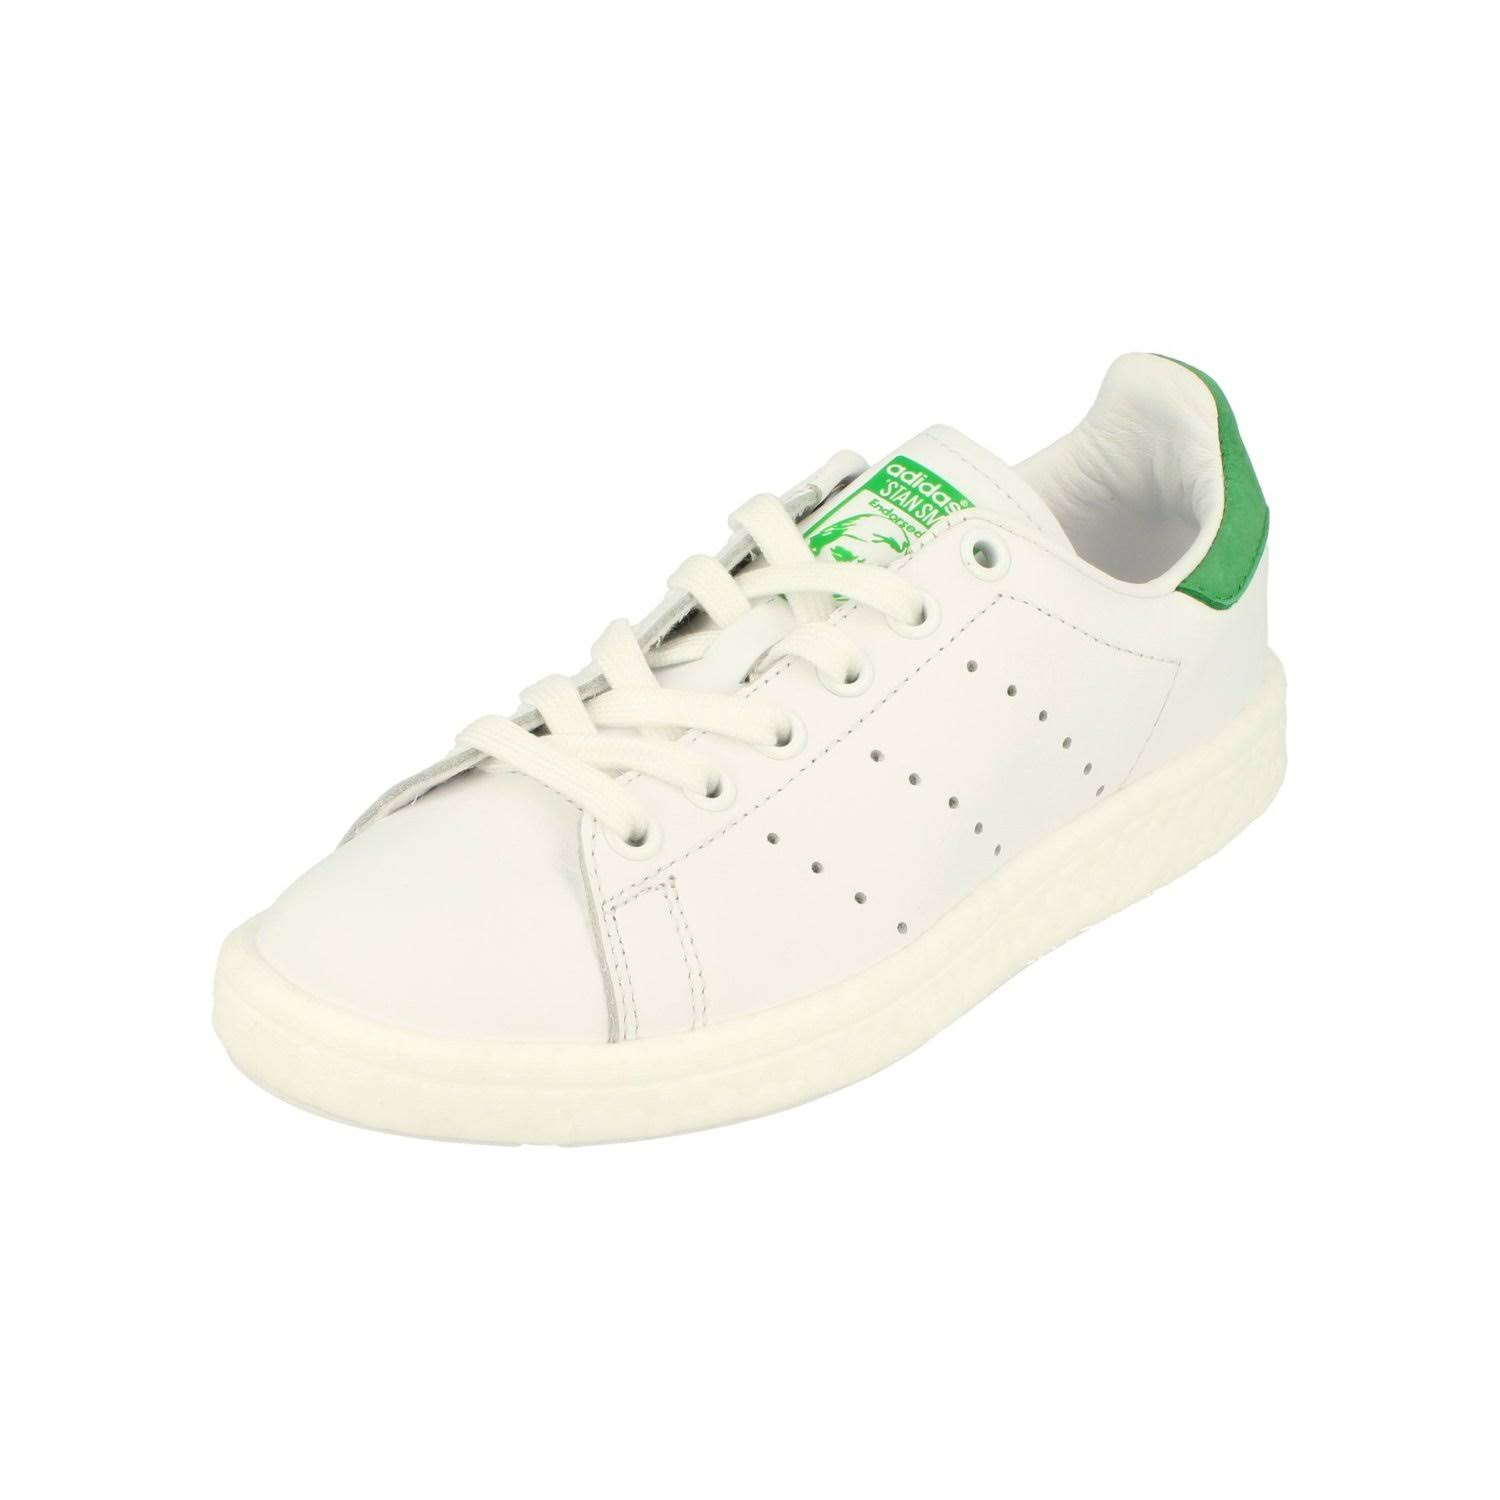 (4) Adidas Originals Stan Smith Boost Mens Running Trainers Sneakers